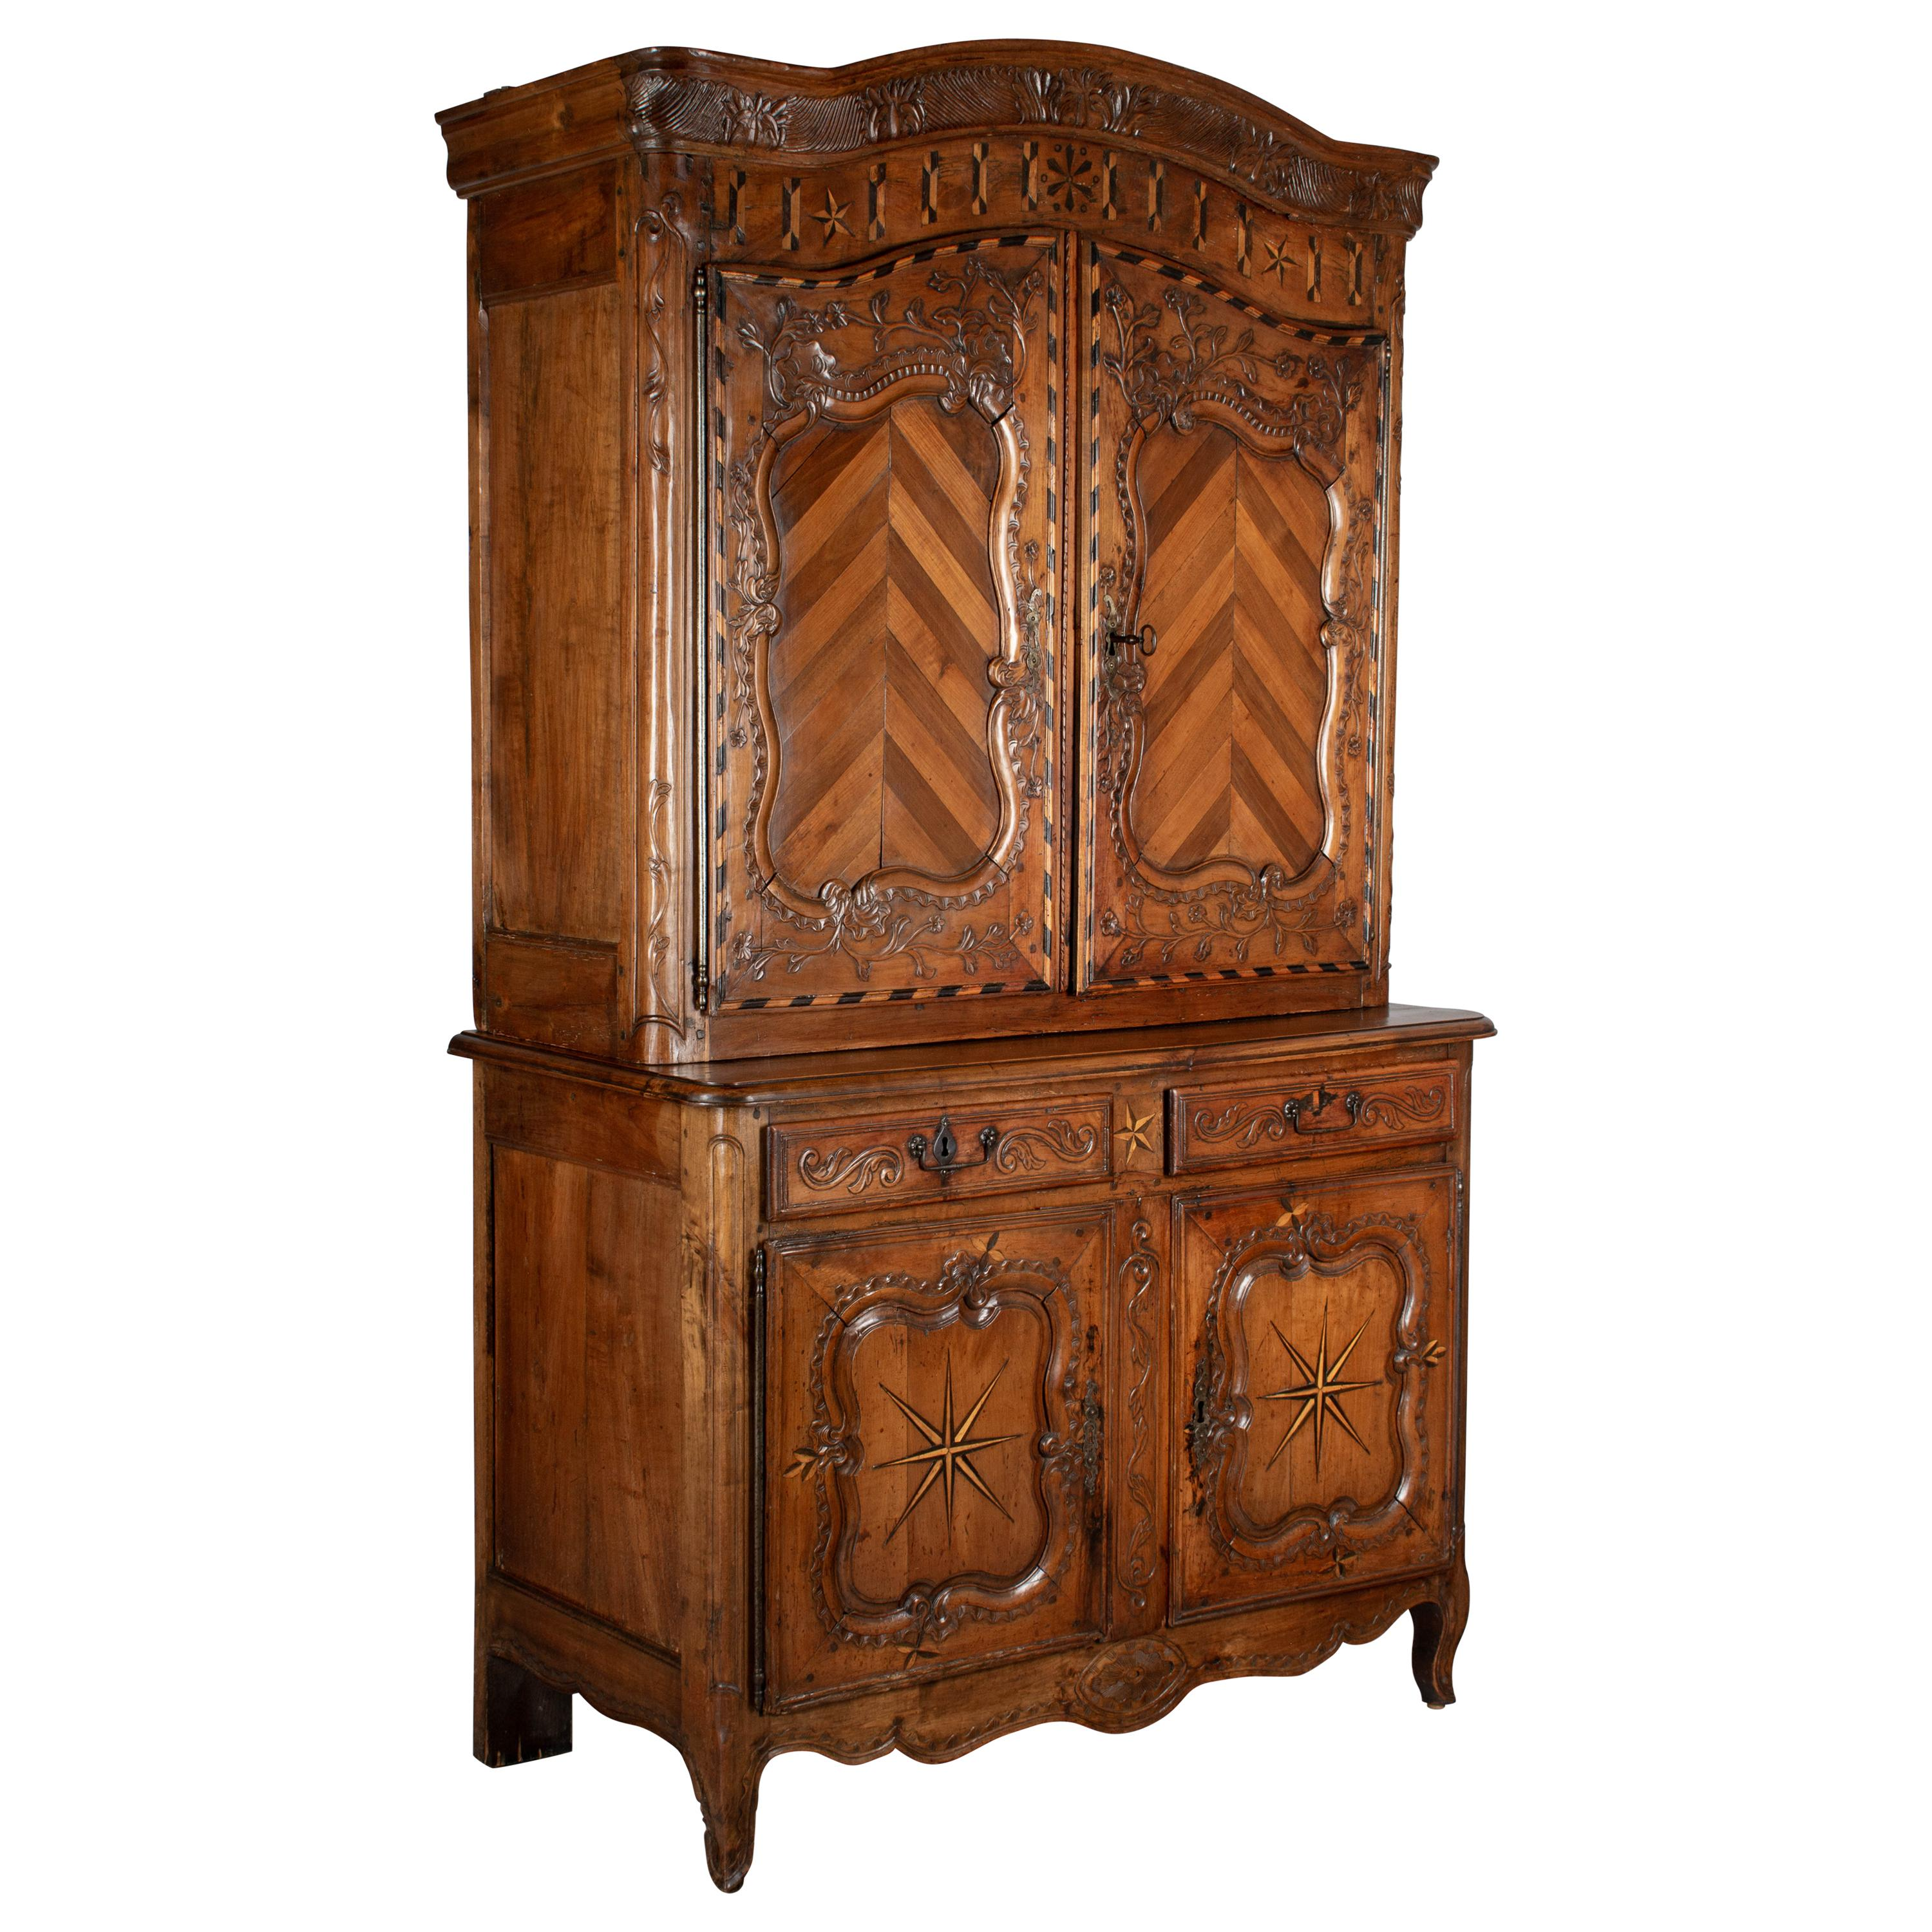 19th Century Louis XV Style Buffet à Deux Corps or Cupboard